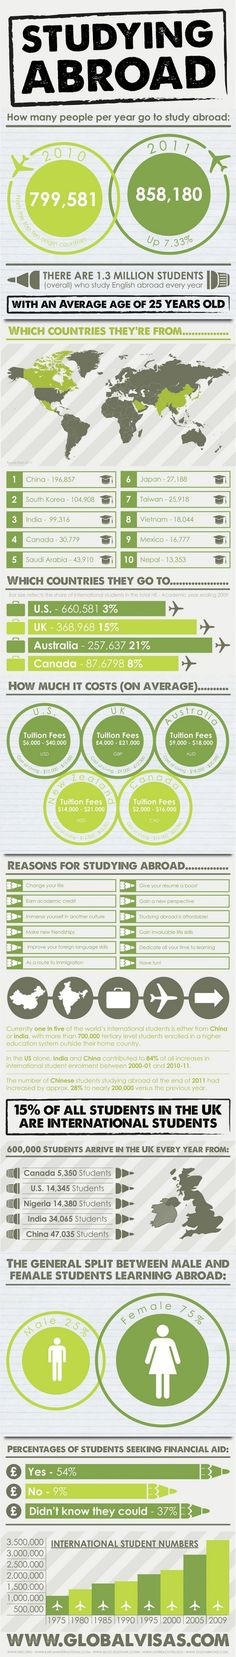 Study Abroad Statistics // That's cool that Canada is in the top 5 for going abroad but also one of the highest for taking students too.